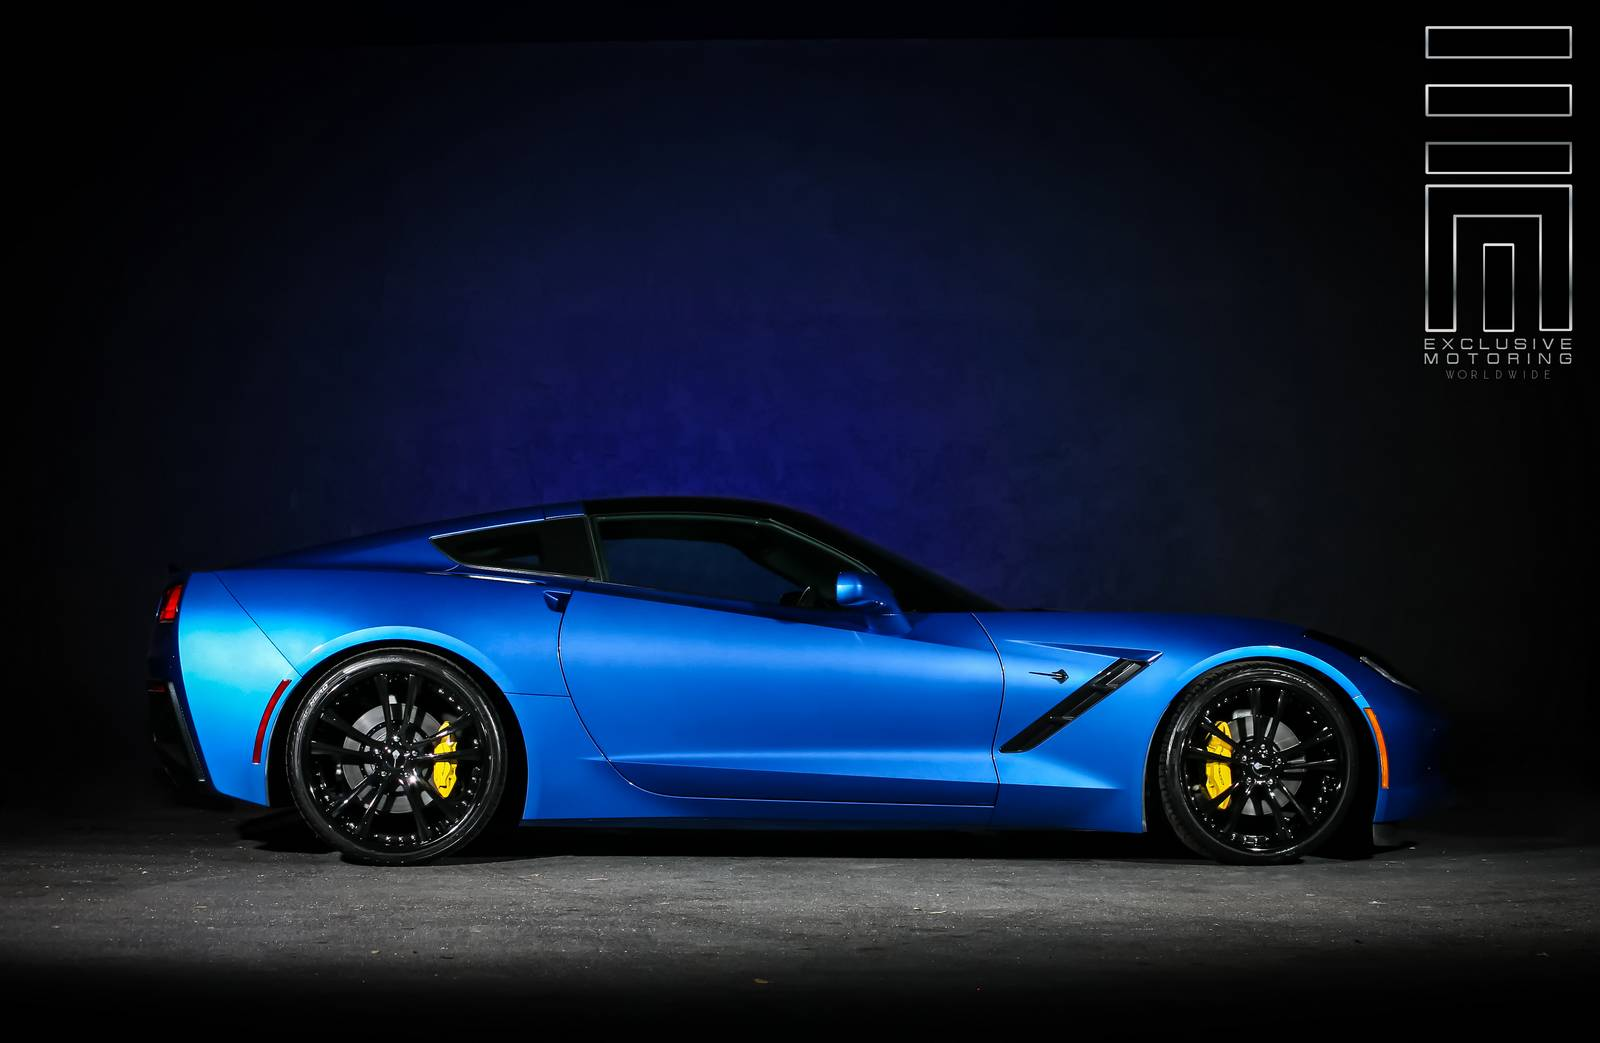 http://www.gtspirit.com/wp-content/gallery/2014-corvette-stingray/2014-corvette-stingray-4.jpg